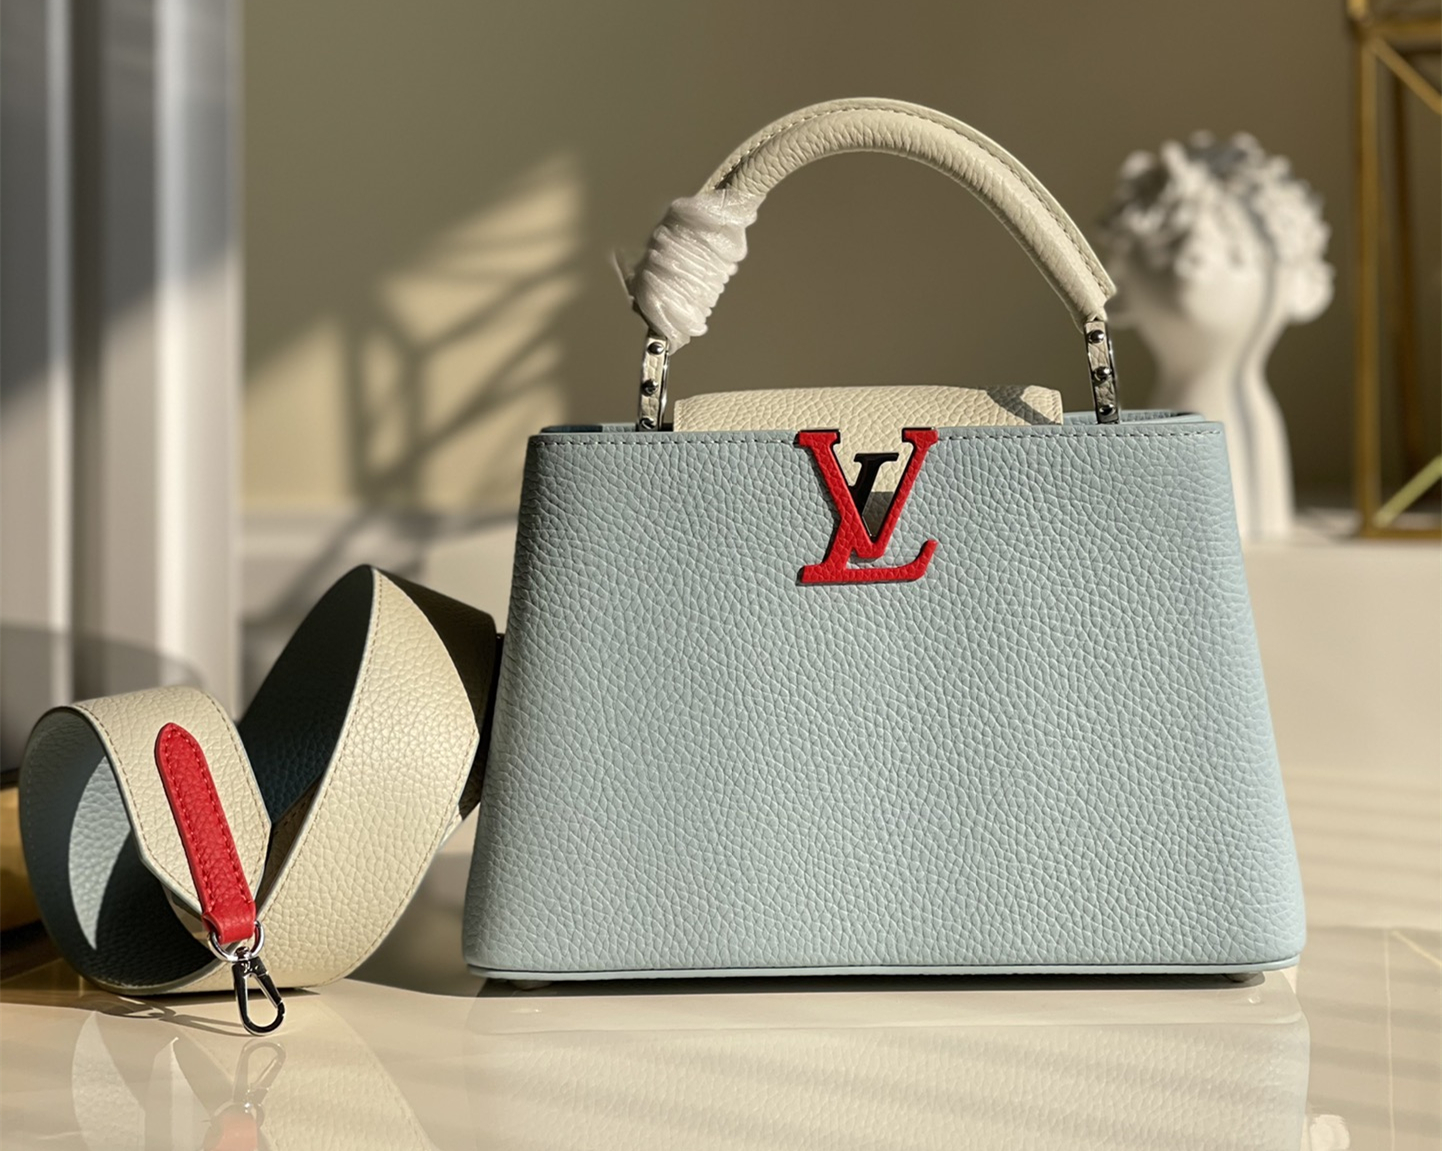 Replica Louis Vuitton M548865 Capucines BB Handbag Olympe Blue Red White Taurillon Leather